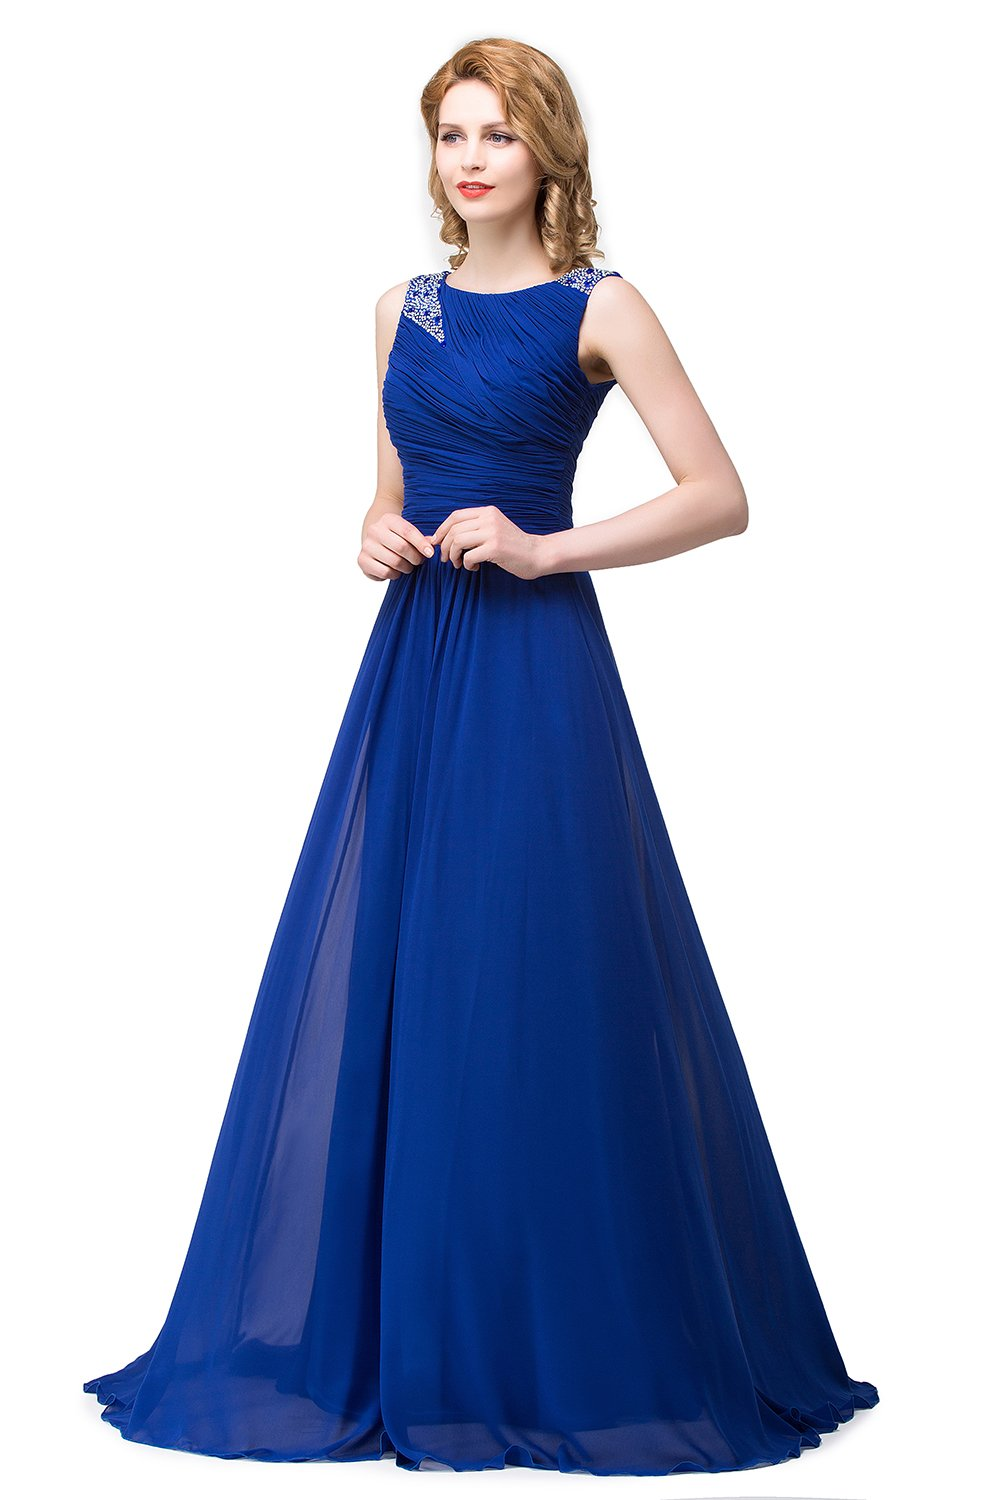 Christmas Big Promotion !Best Gift For Christmas! Elegant Royal Blue Chiffon Prom Dress Long Ruched Evening Gowns With Beadings (2, Royal Blue)